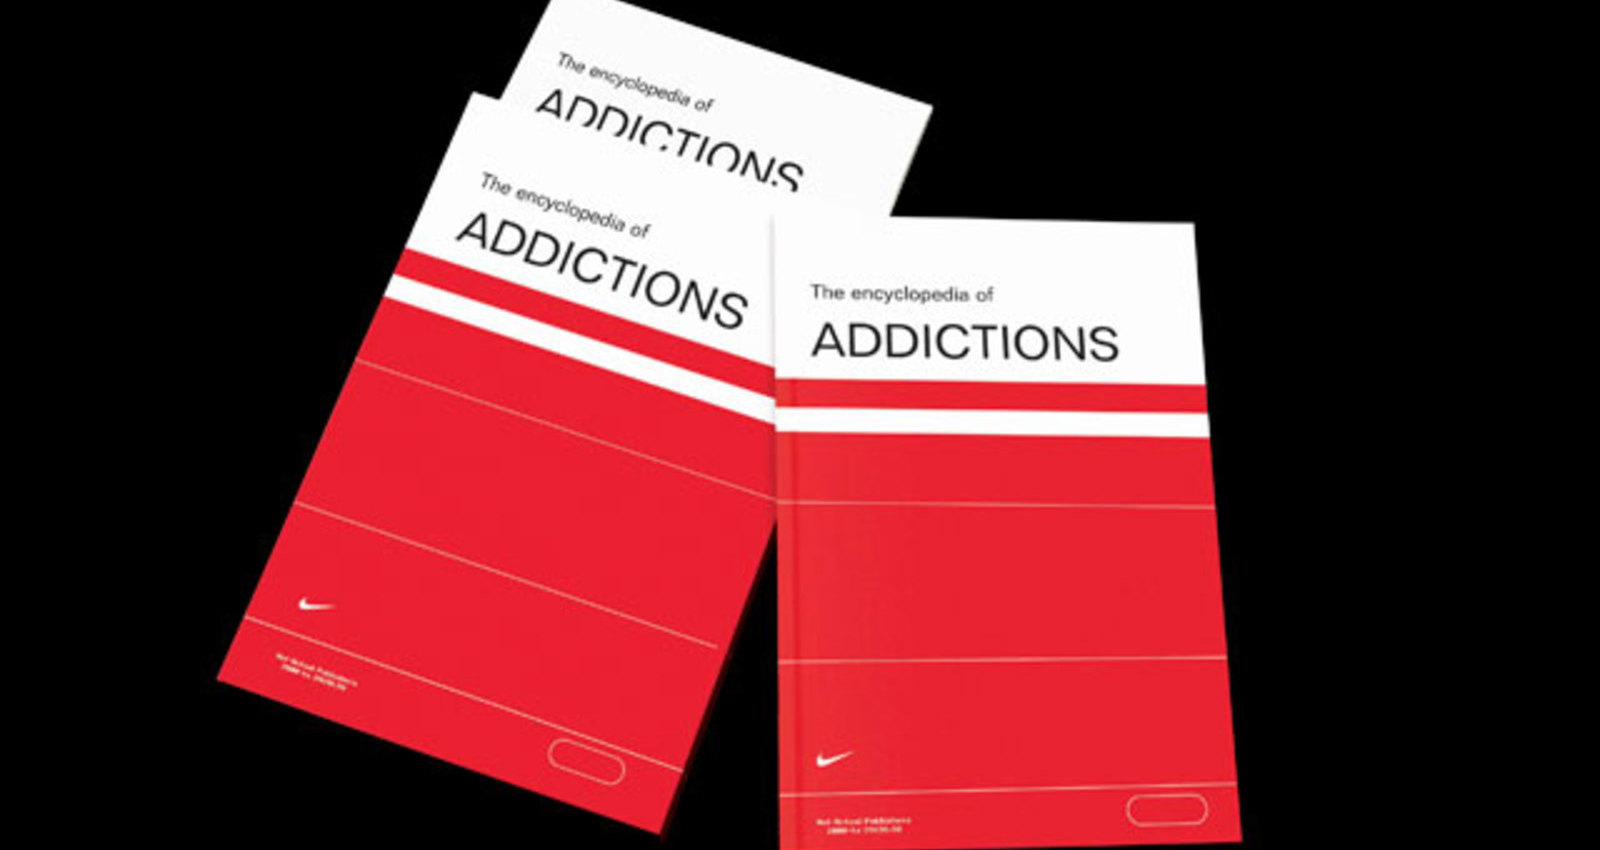 Nike Women's Apparel Book - Encyclopedia of Addictions